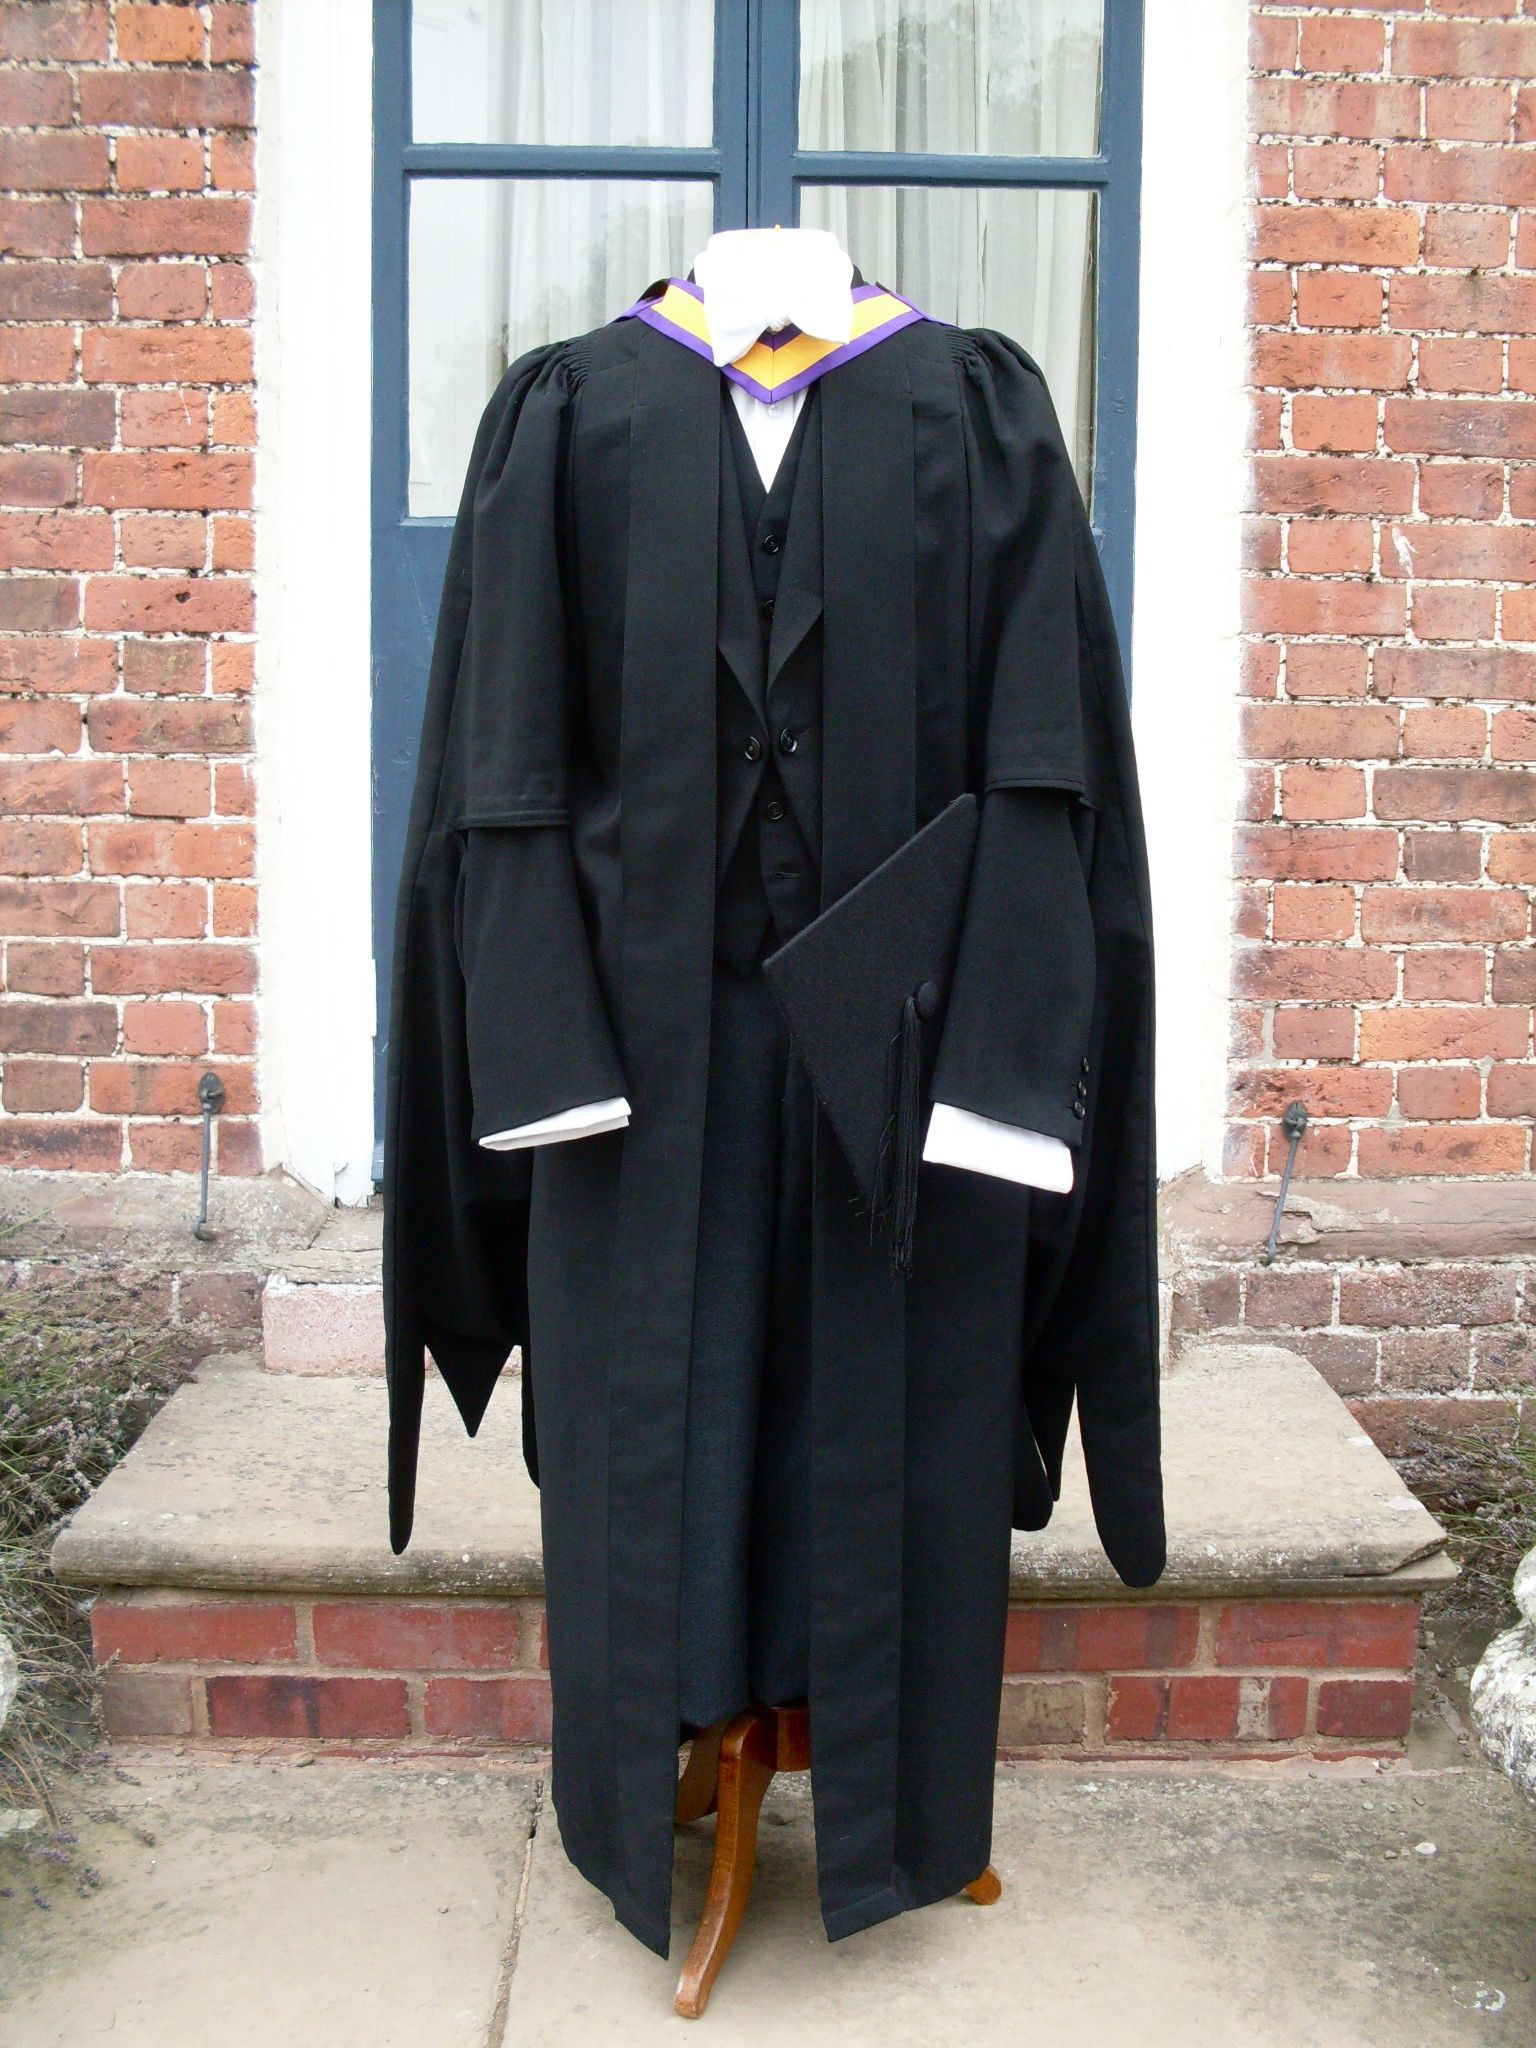 Academic Dress | Andrews & Pygott: The Morning Dress Guide